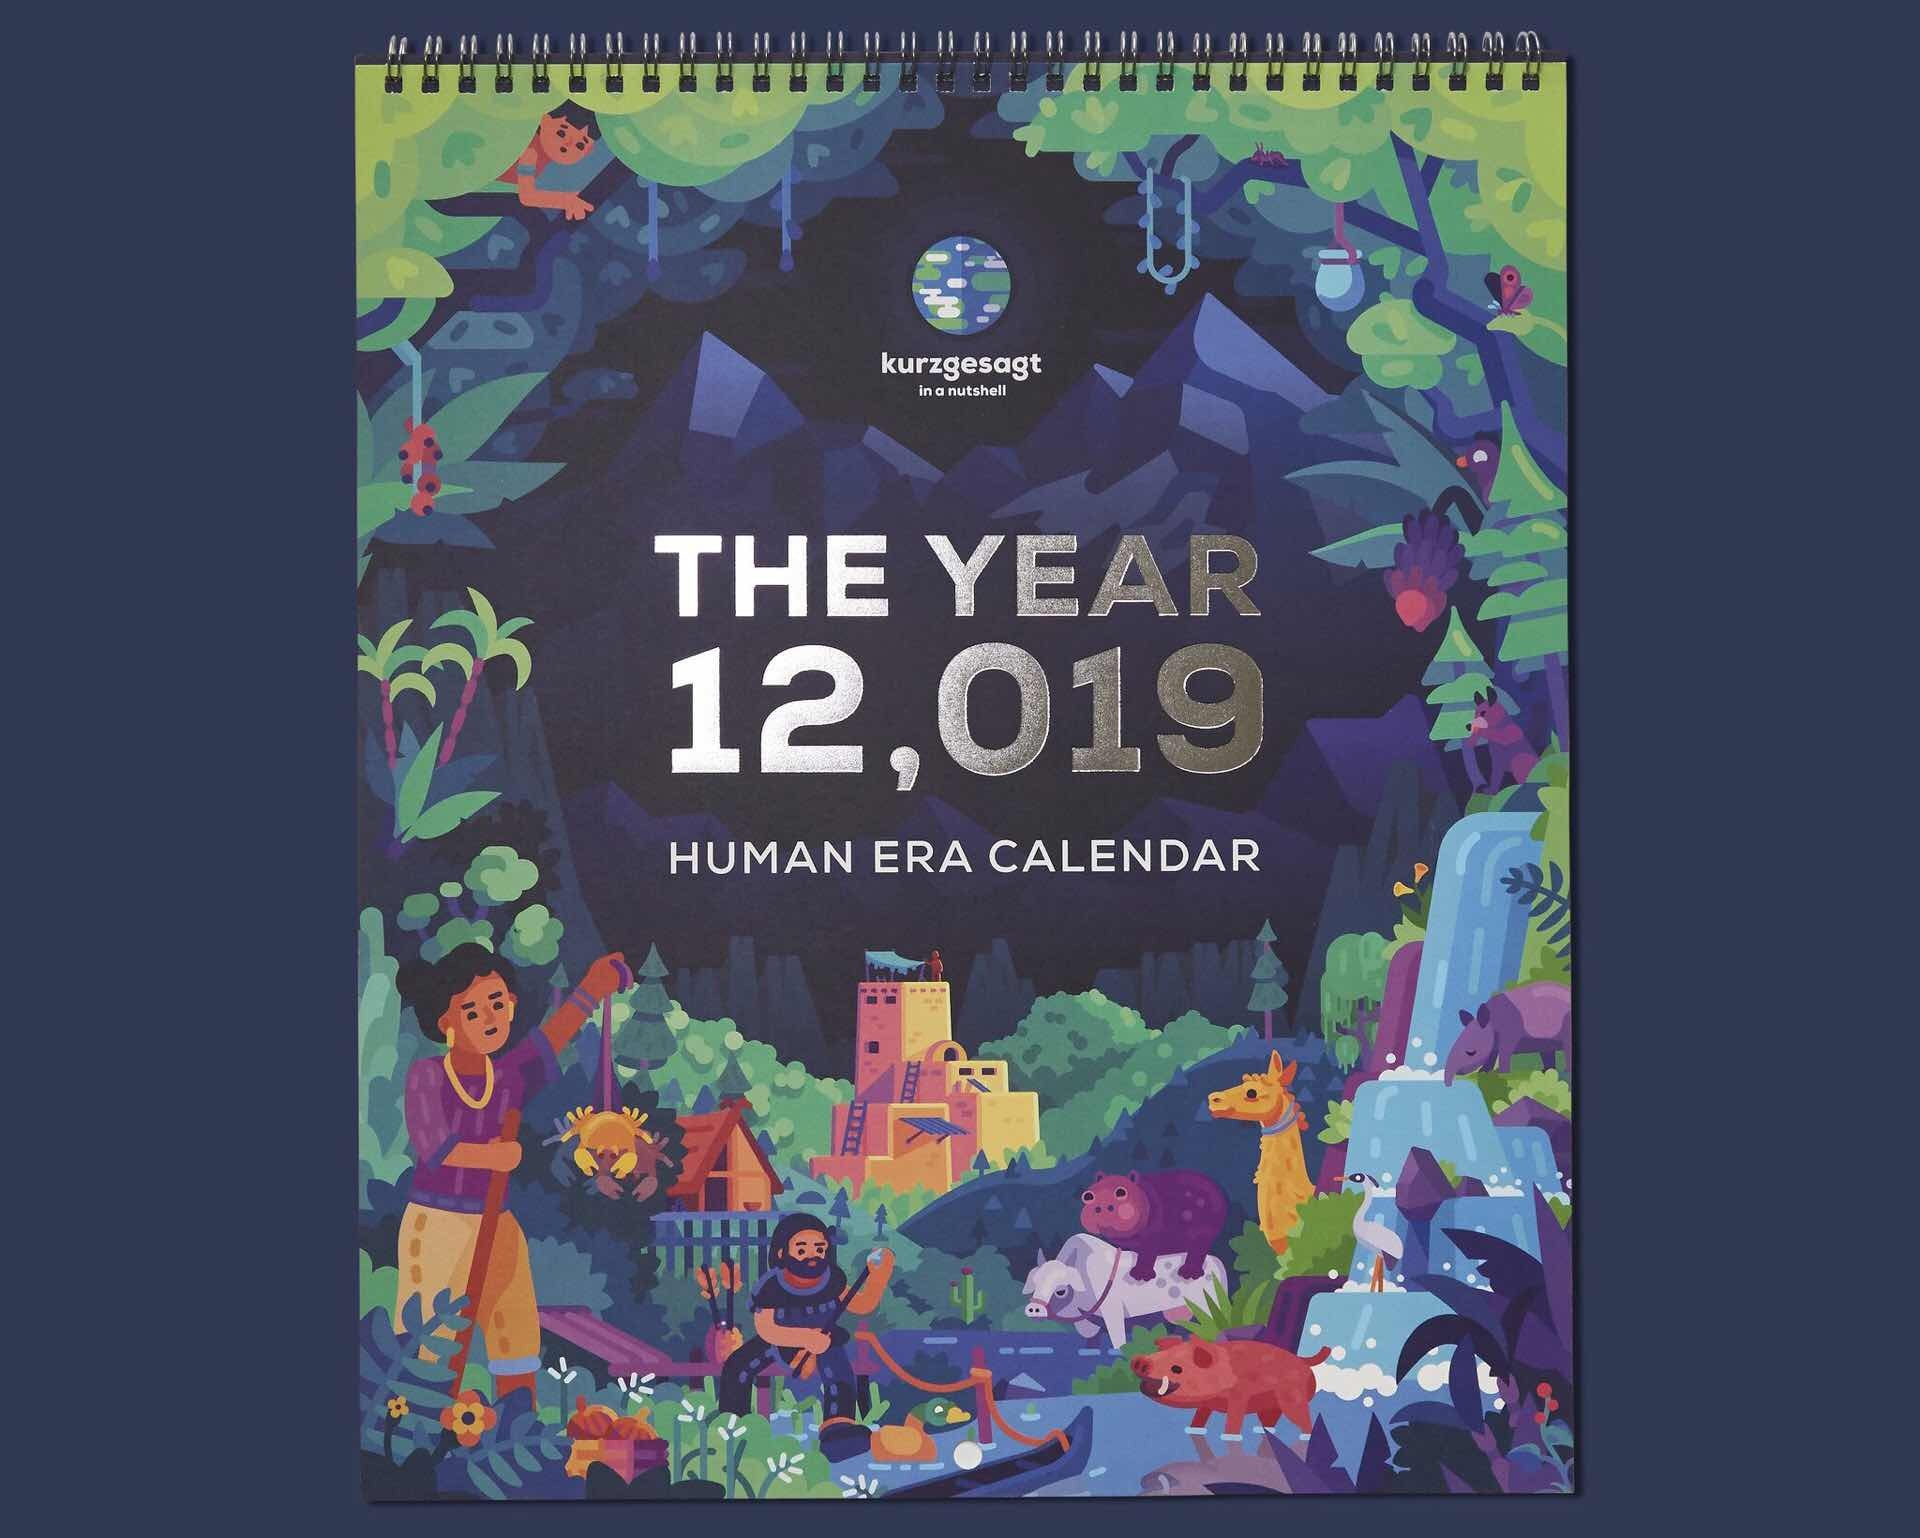 As part of their ongoing campaign to [establish a new history for humanity](https://youtube.com/watch?v=czgOWmtGVGs), Kurzgesagt's new calendar celebrates the *true* upcoming year of 12,019 H.E. ($25)